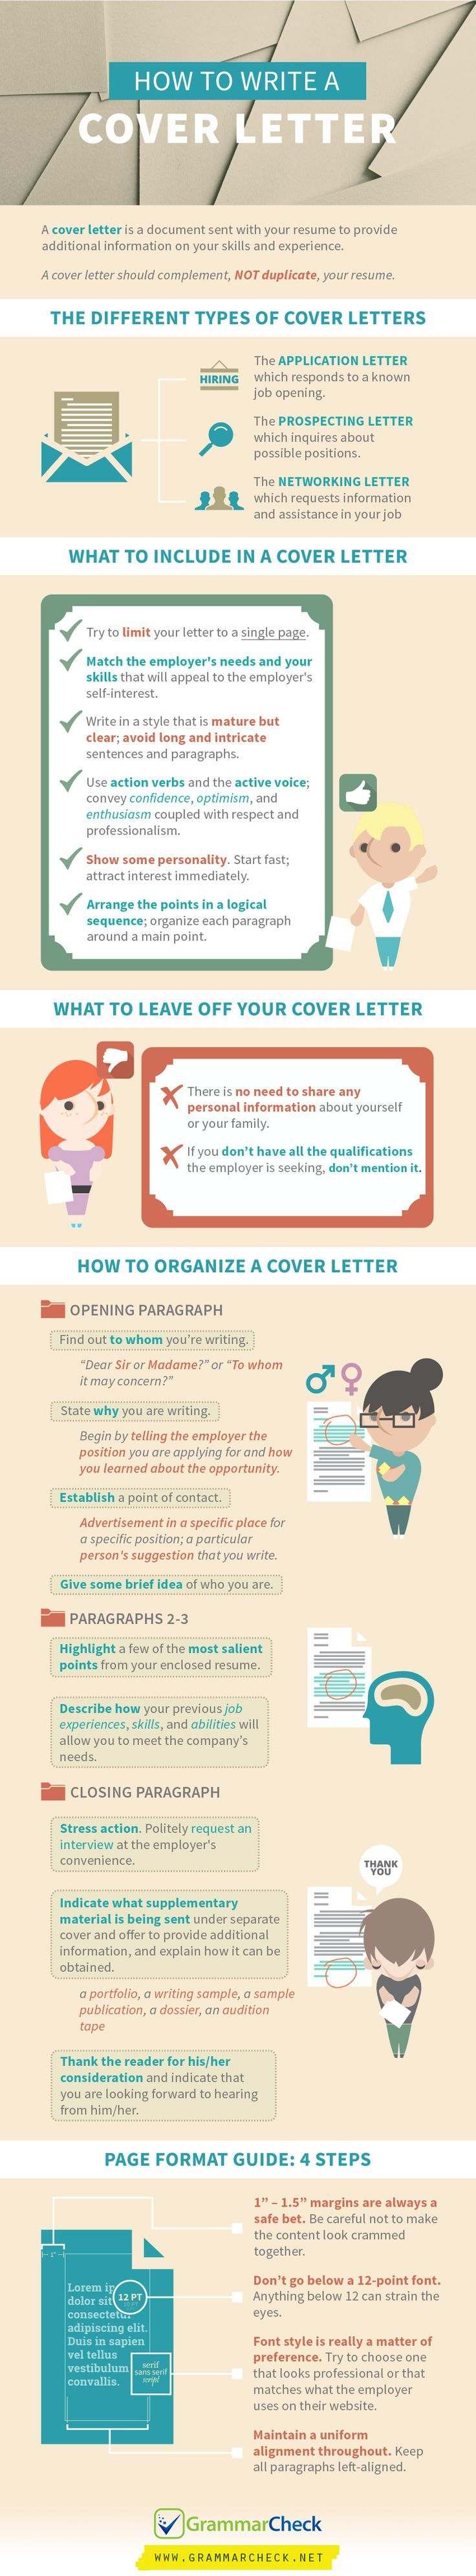 Cover Letter Advice Impressive How To Write A Cover Letter  Cover Letter Tips  Cover Letters Inspiration Design